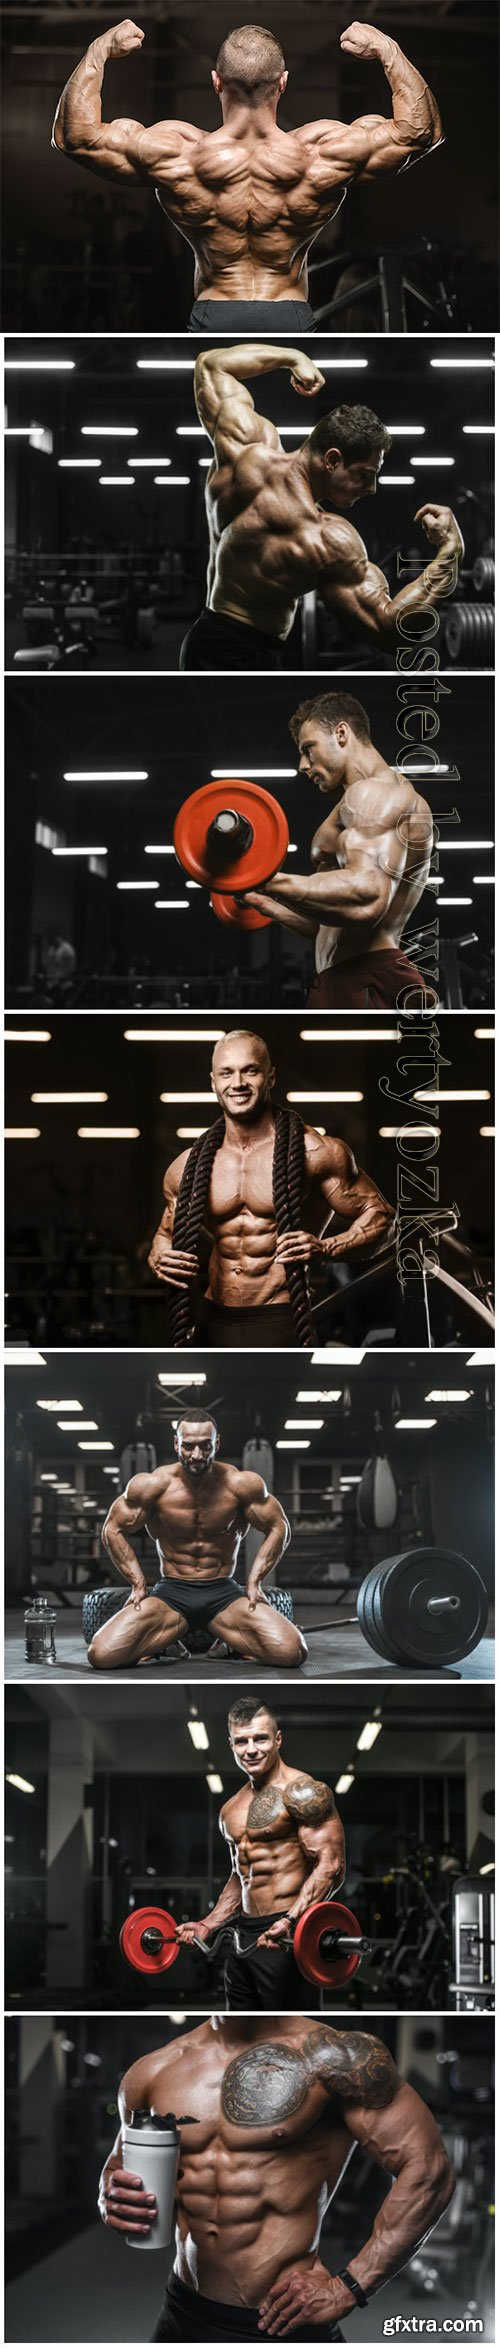 Handsome strong men in the gym